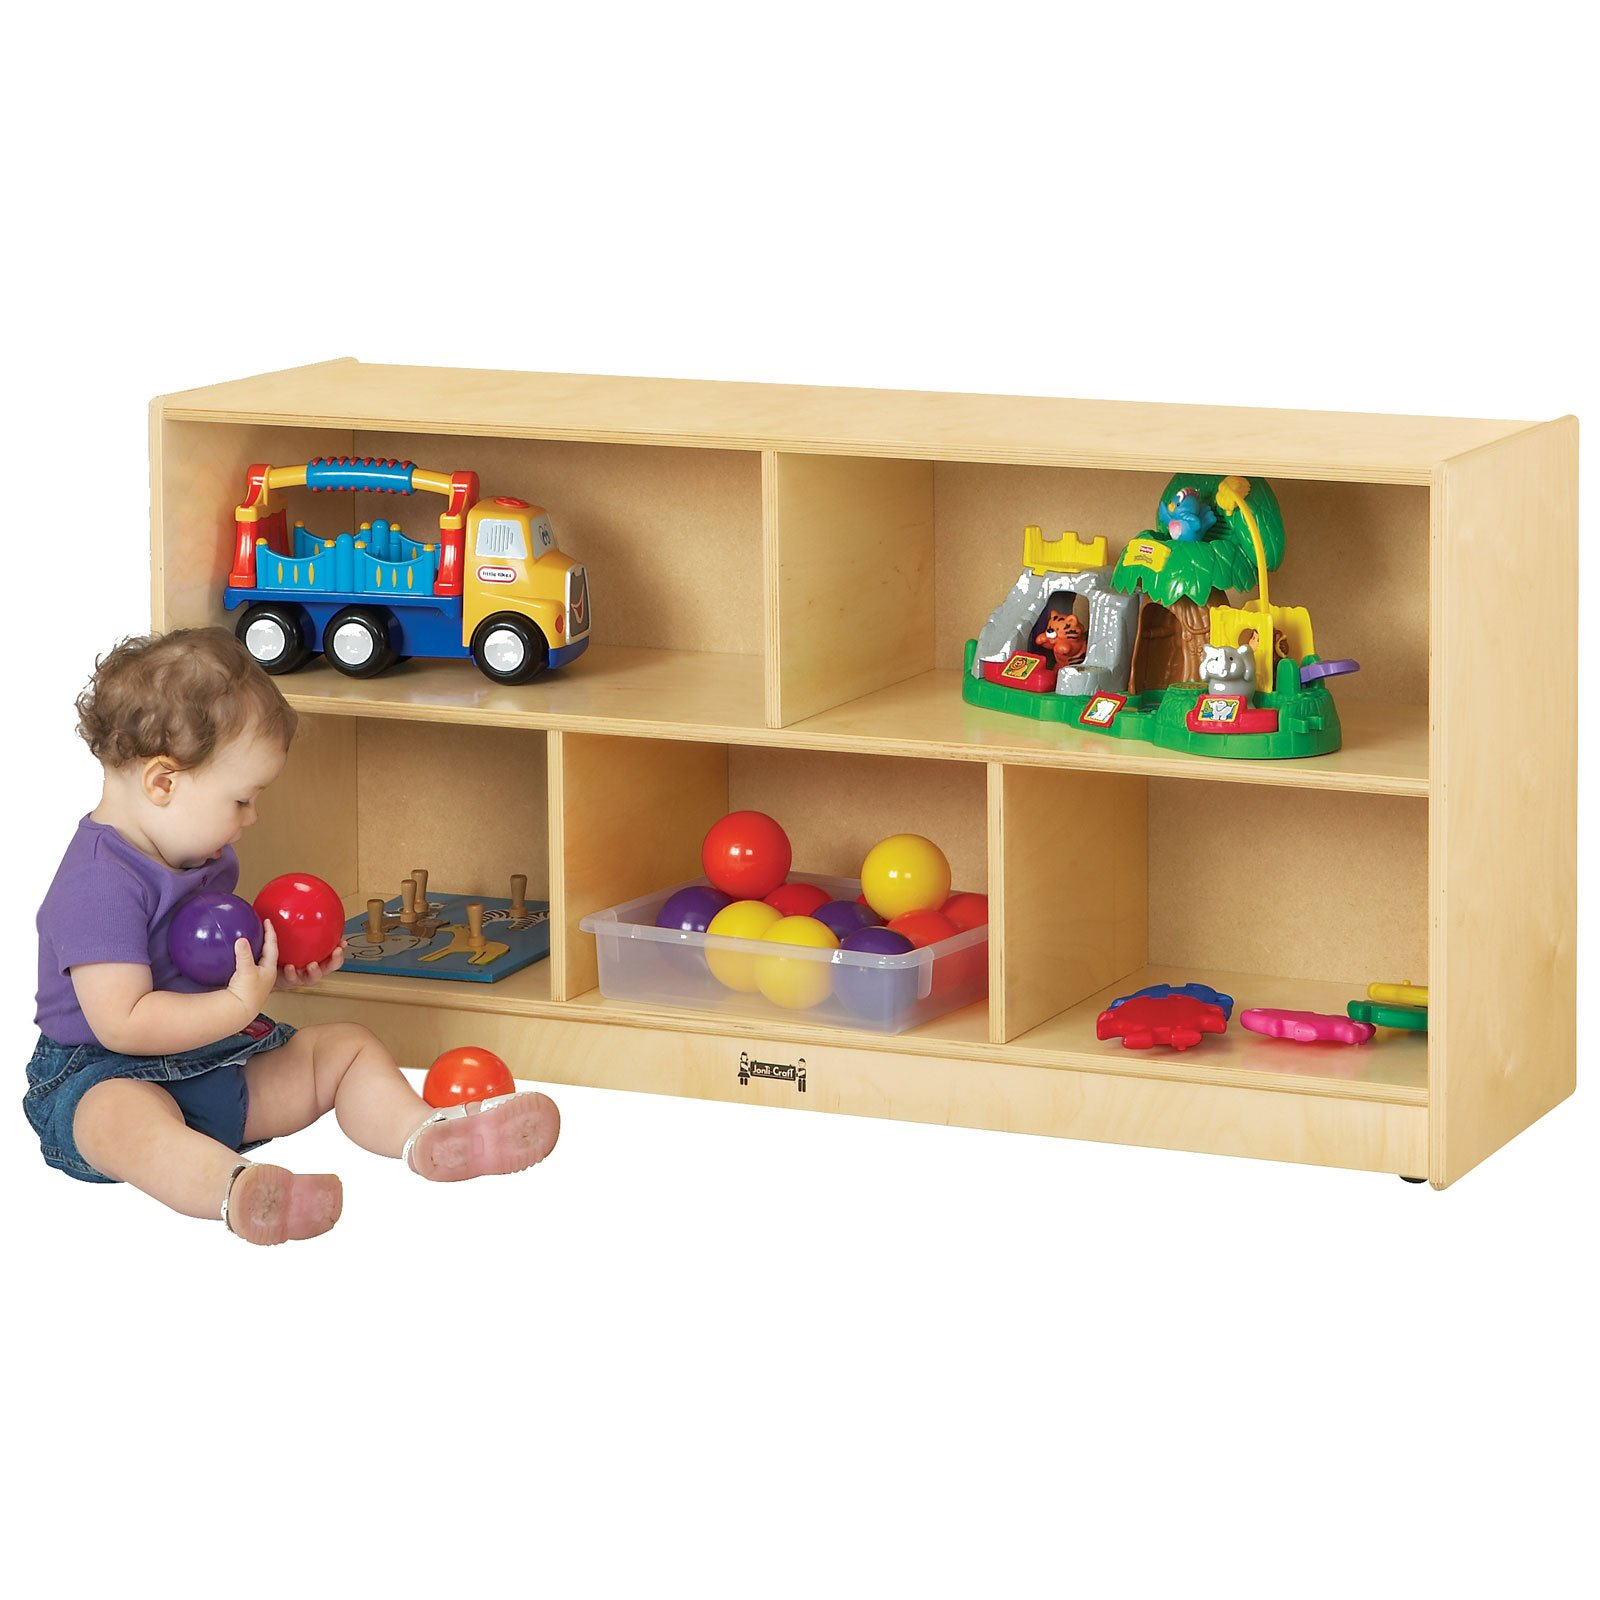 Jonti-Craft Toddler Single Storage Bookcase